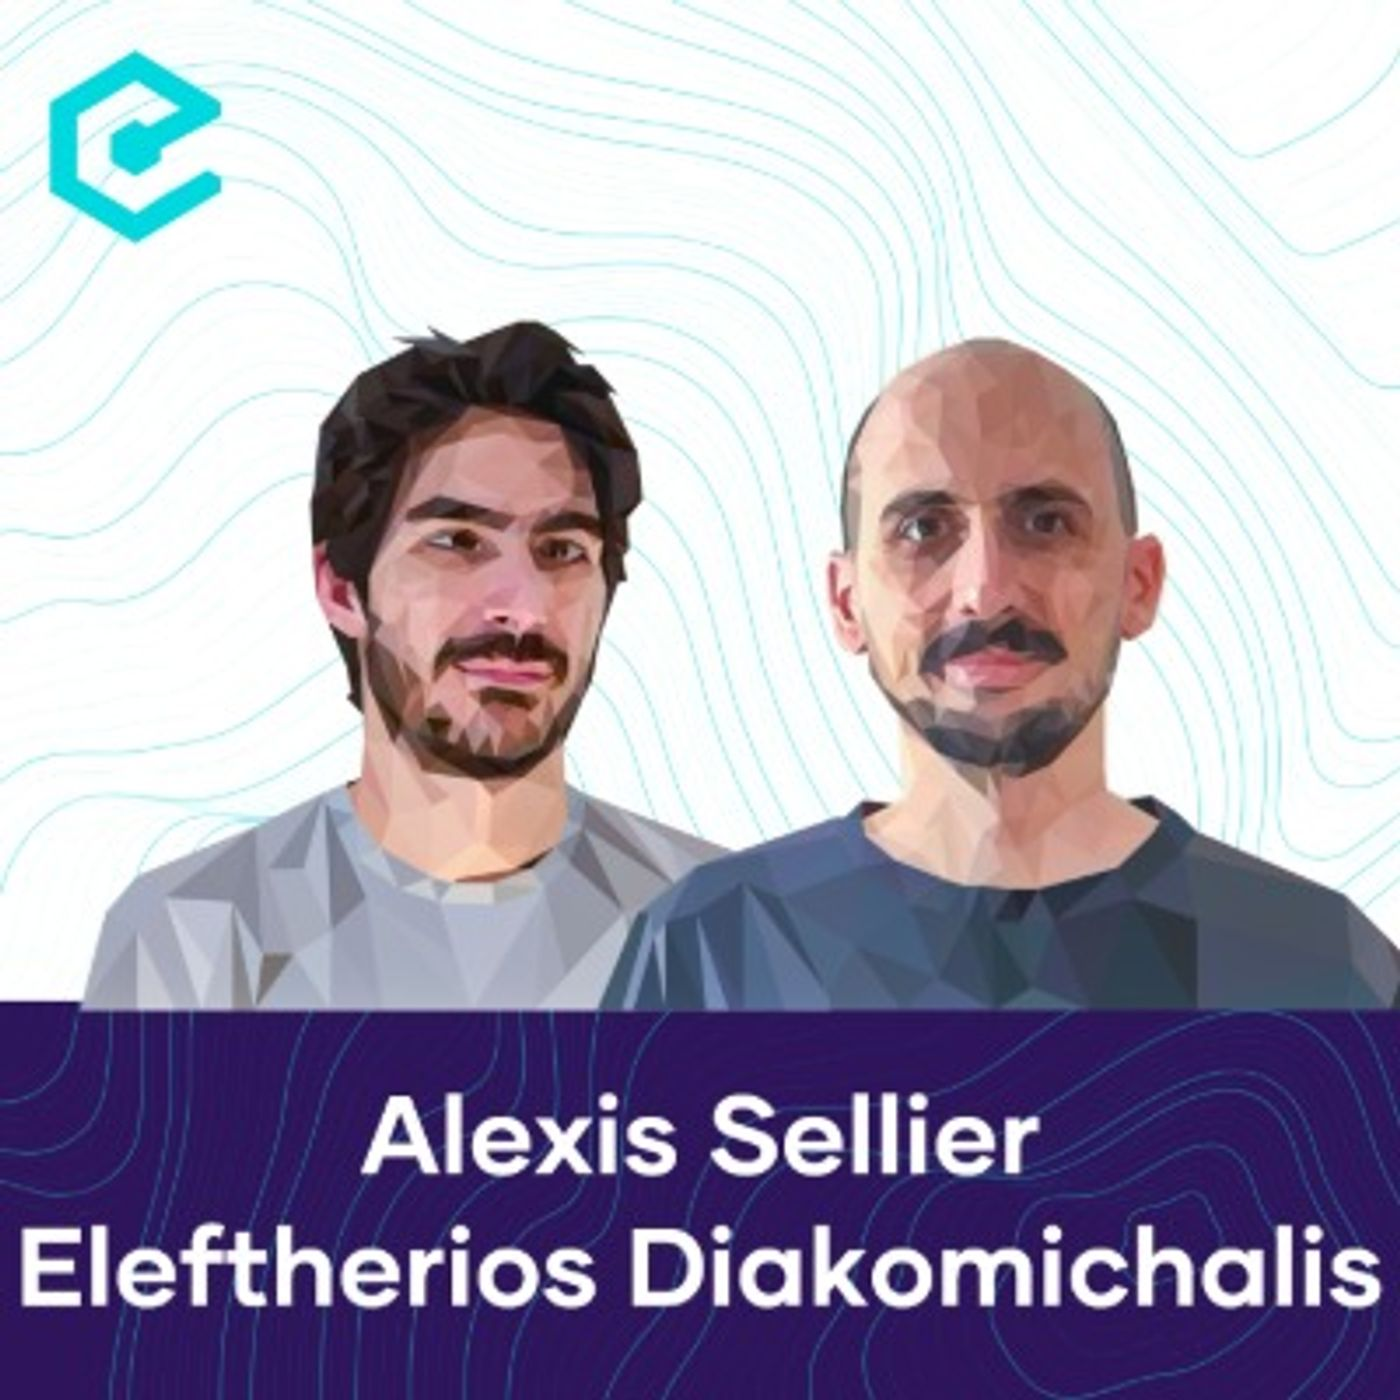 Alexis Sellier & Eleftherios Diakomichalis: Radicle – The Decentralized Platform for Code Collaboration